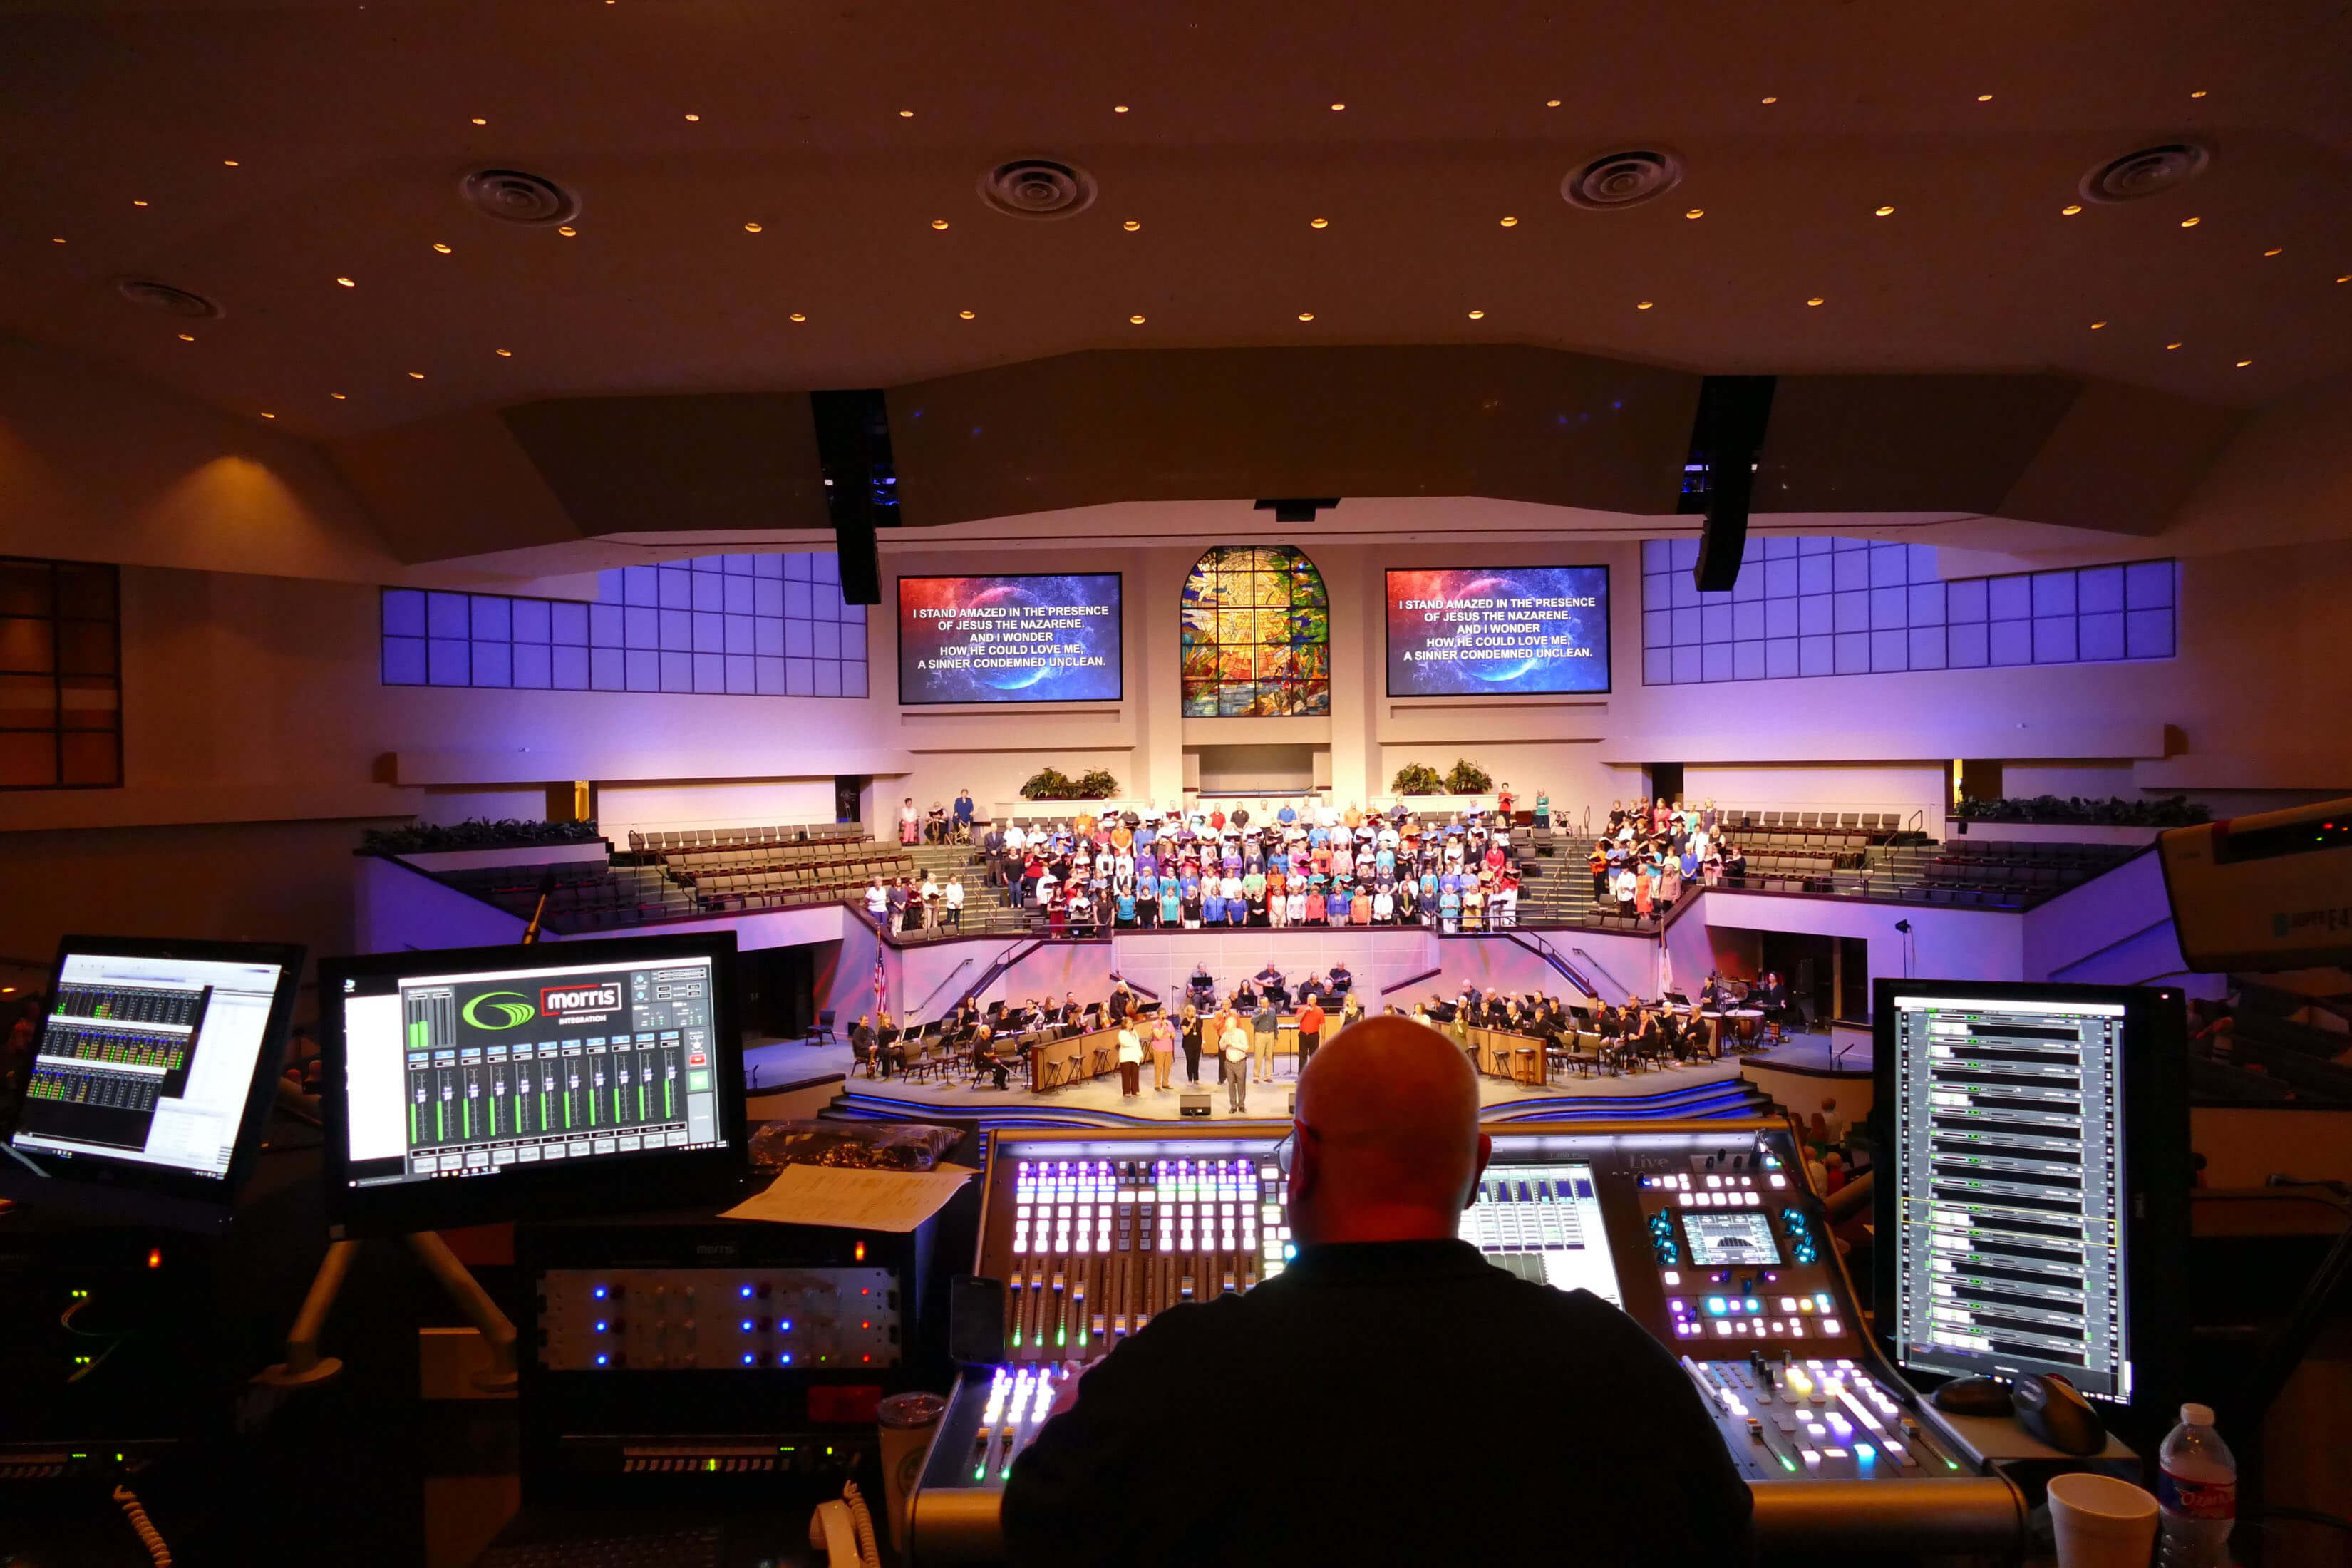 Green Acres Southern Baptist Church has installed tools from Waves Audio